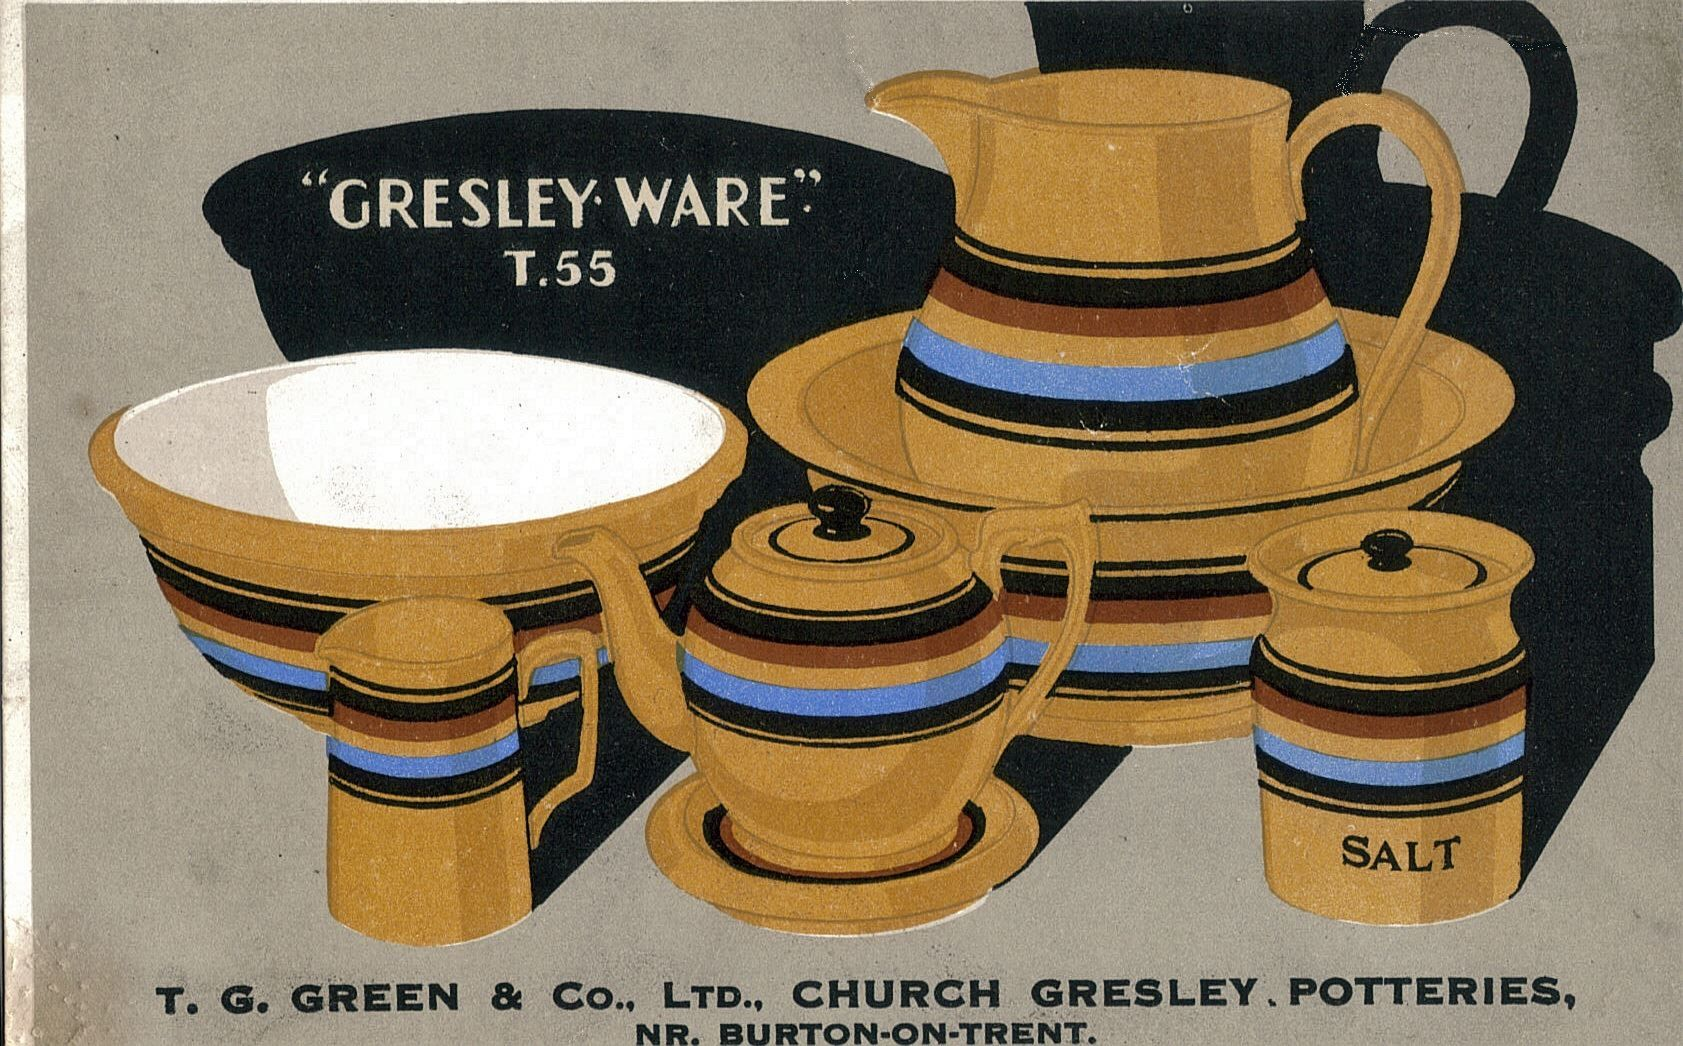 Gresley Ware advertising card with registered pattern